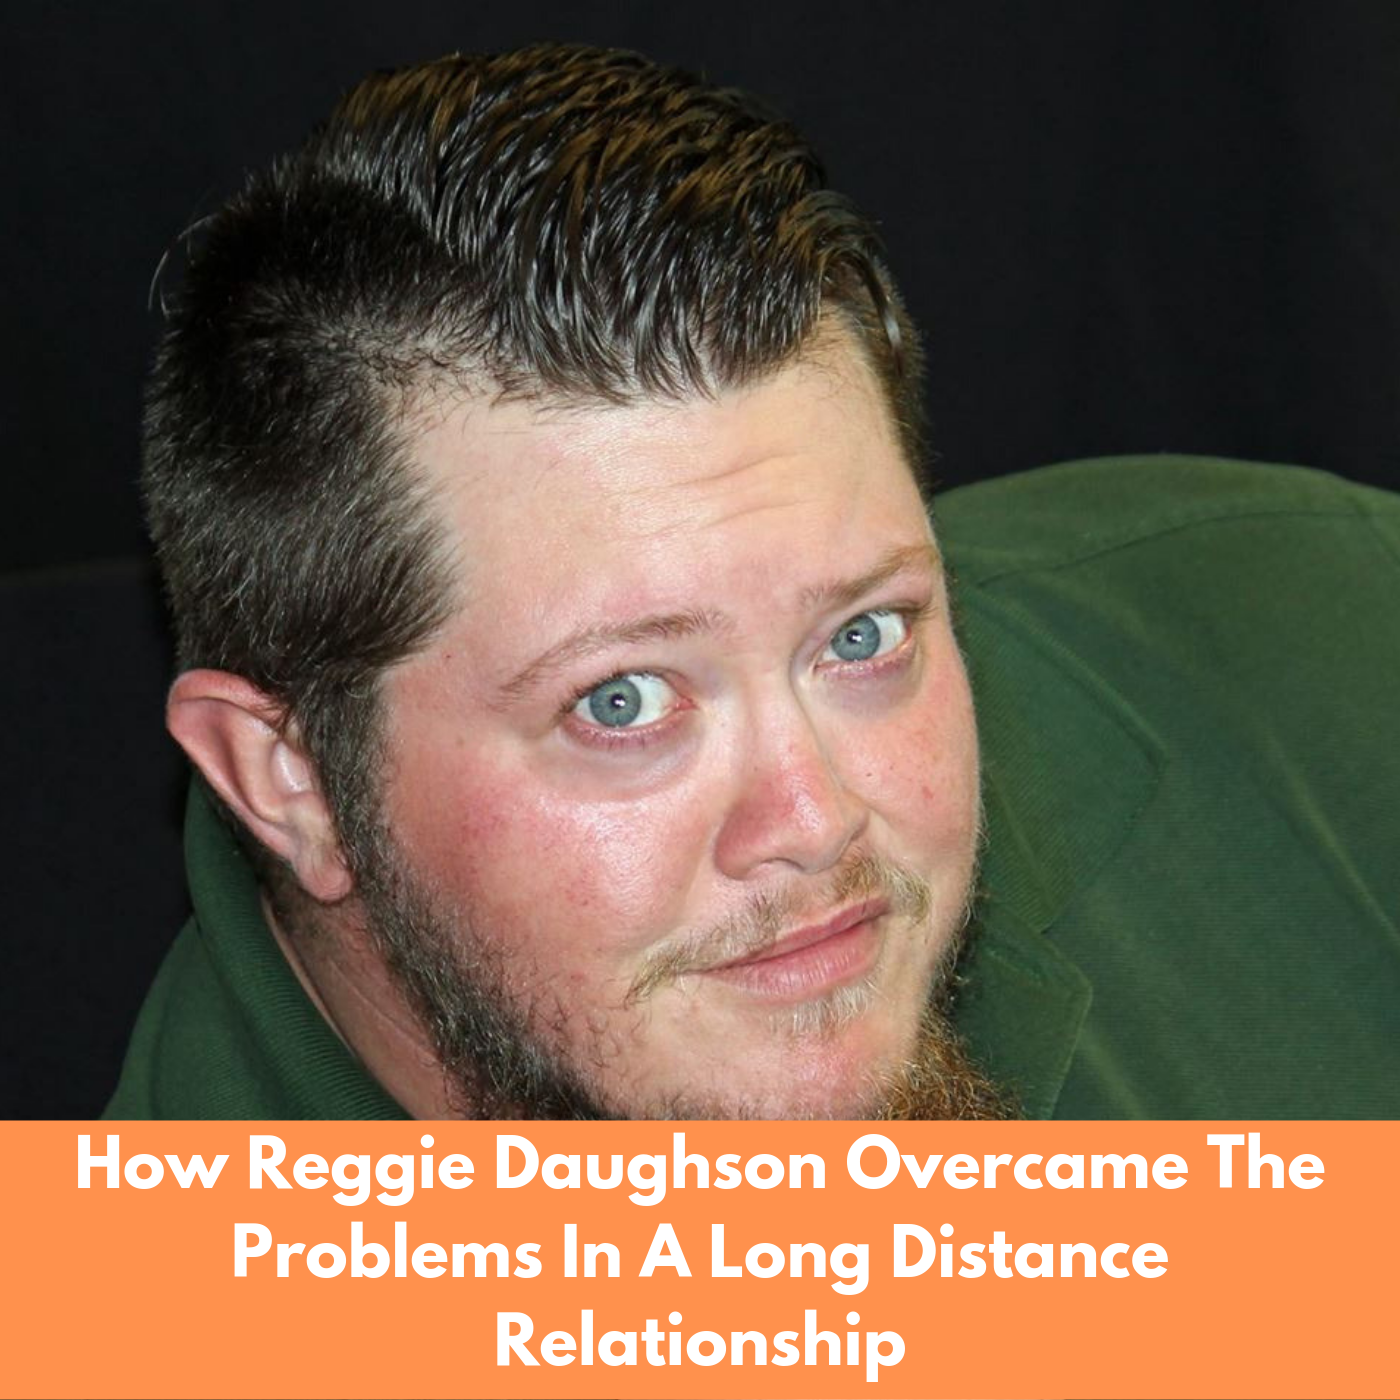 How Reggie Daughson Overcame The Problems In A Long Distance Relationship